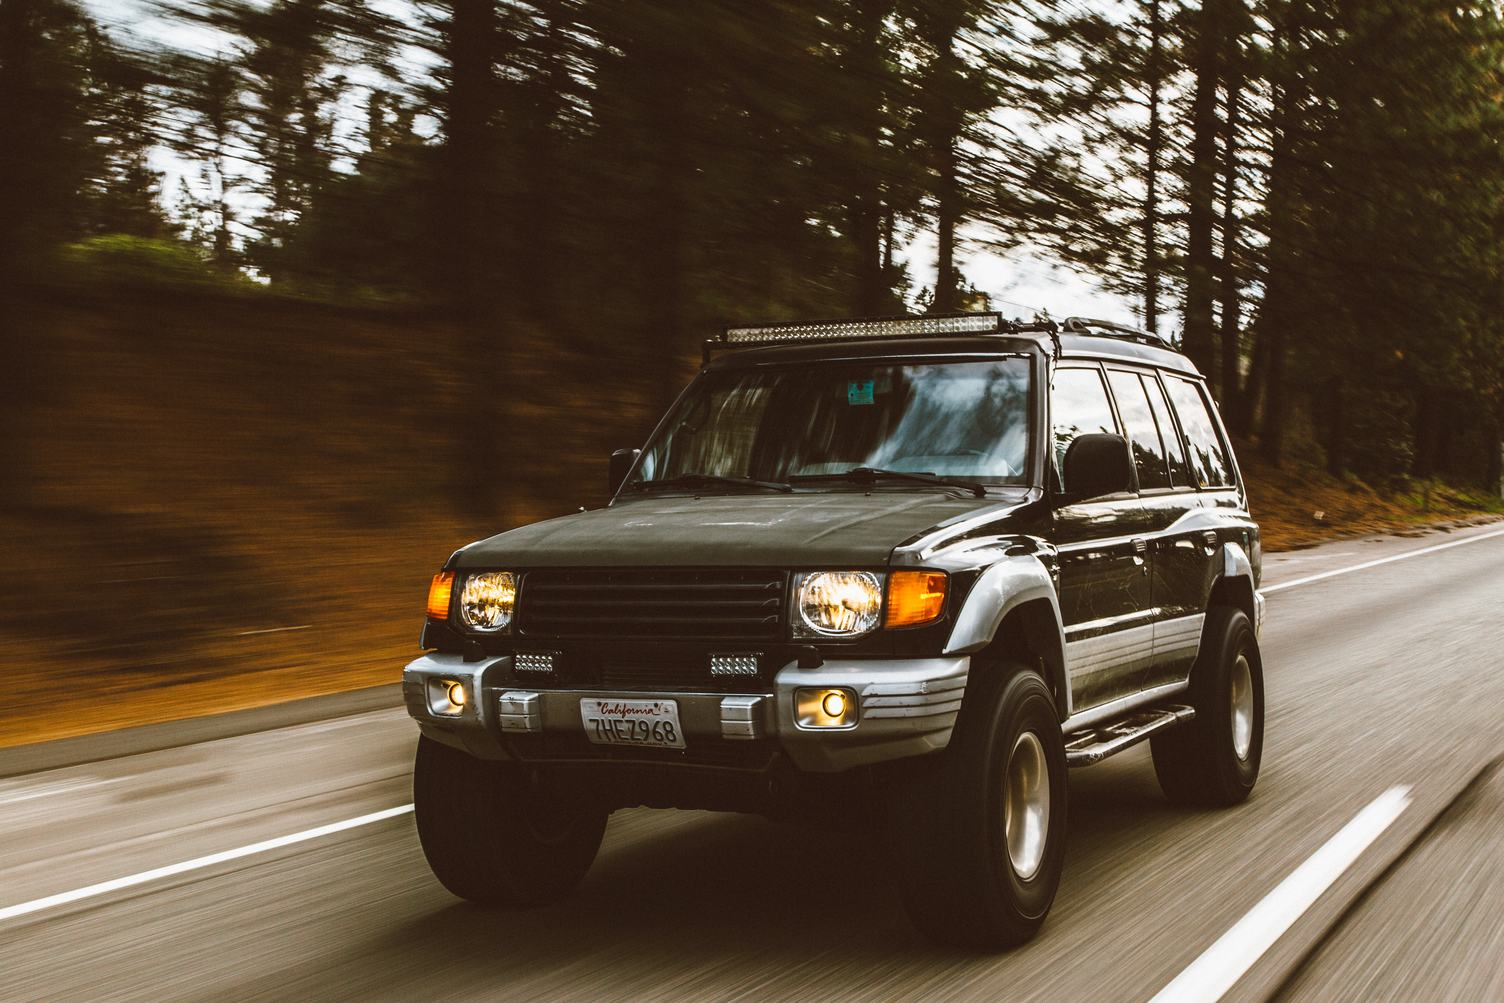 Motion Blur Shot of SUV on the Road